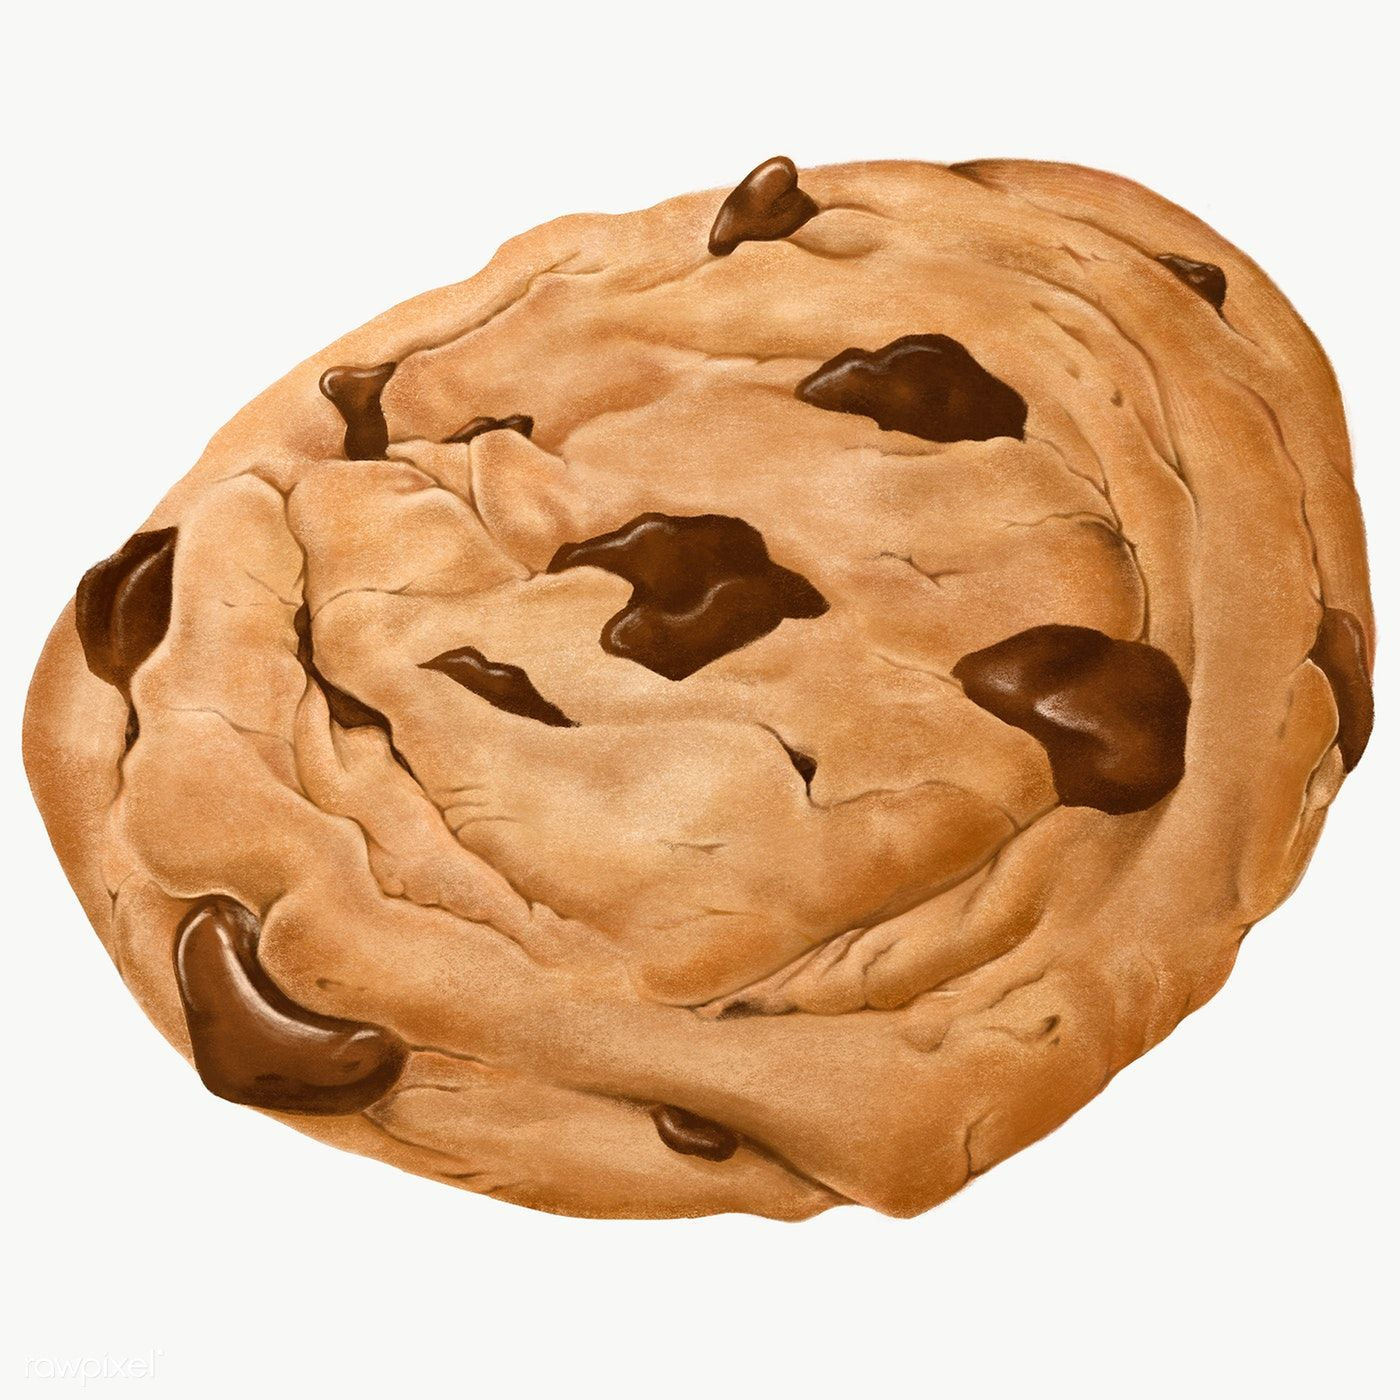 Hand Drawn Chocolate Chip Cookie Transparent Png Free Image By Rawpixel Com Noon Seni